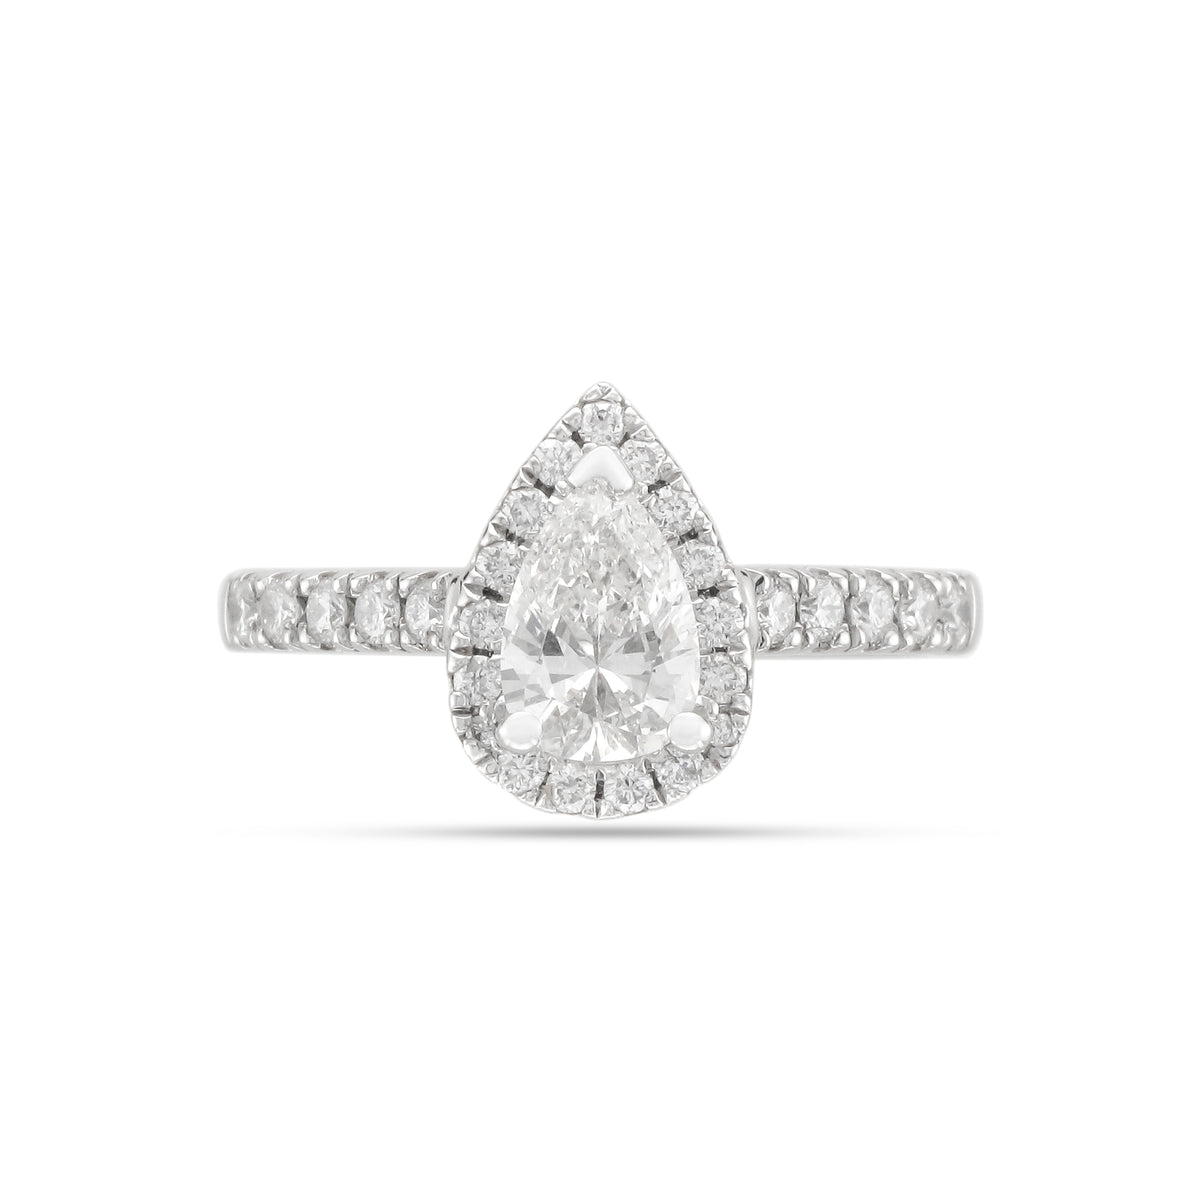 0.70ct Pear-Cut Diamond Halo Engagement Ring